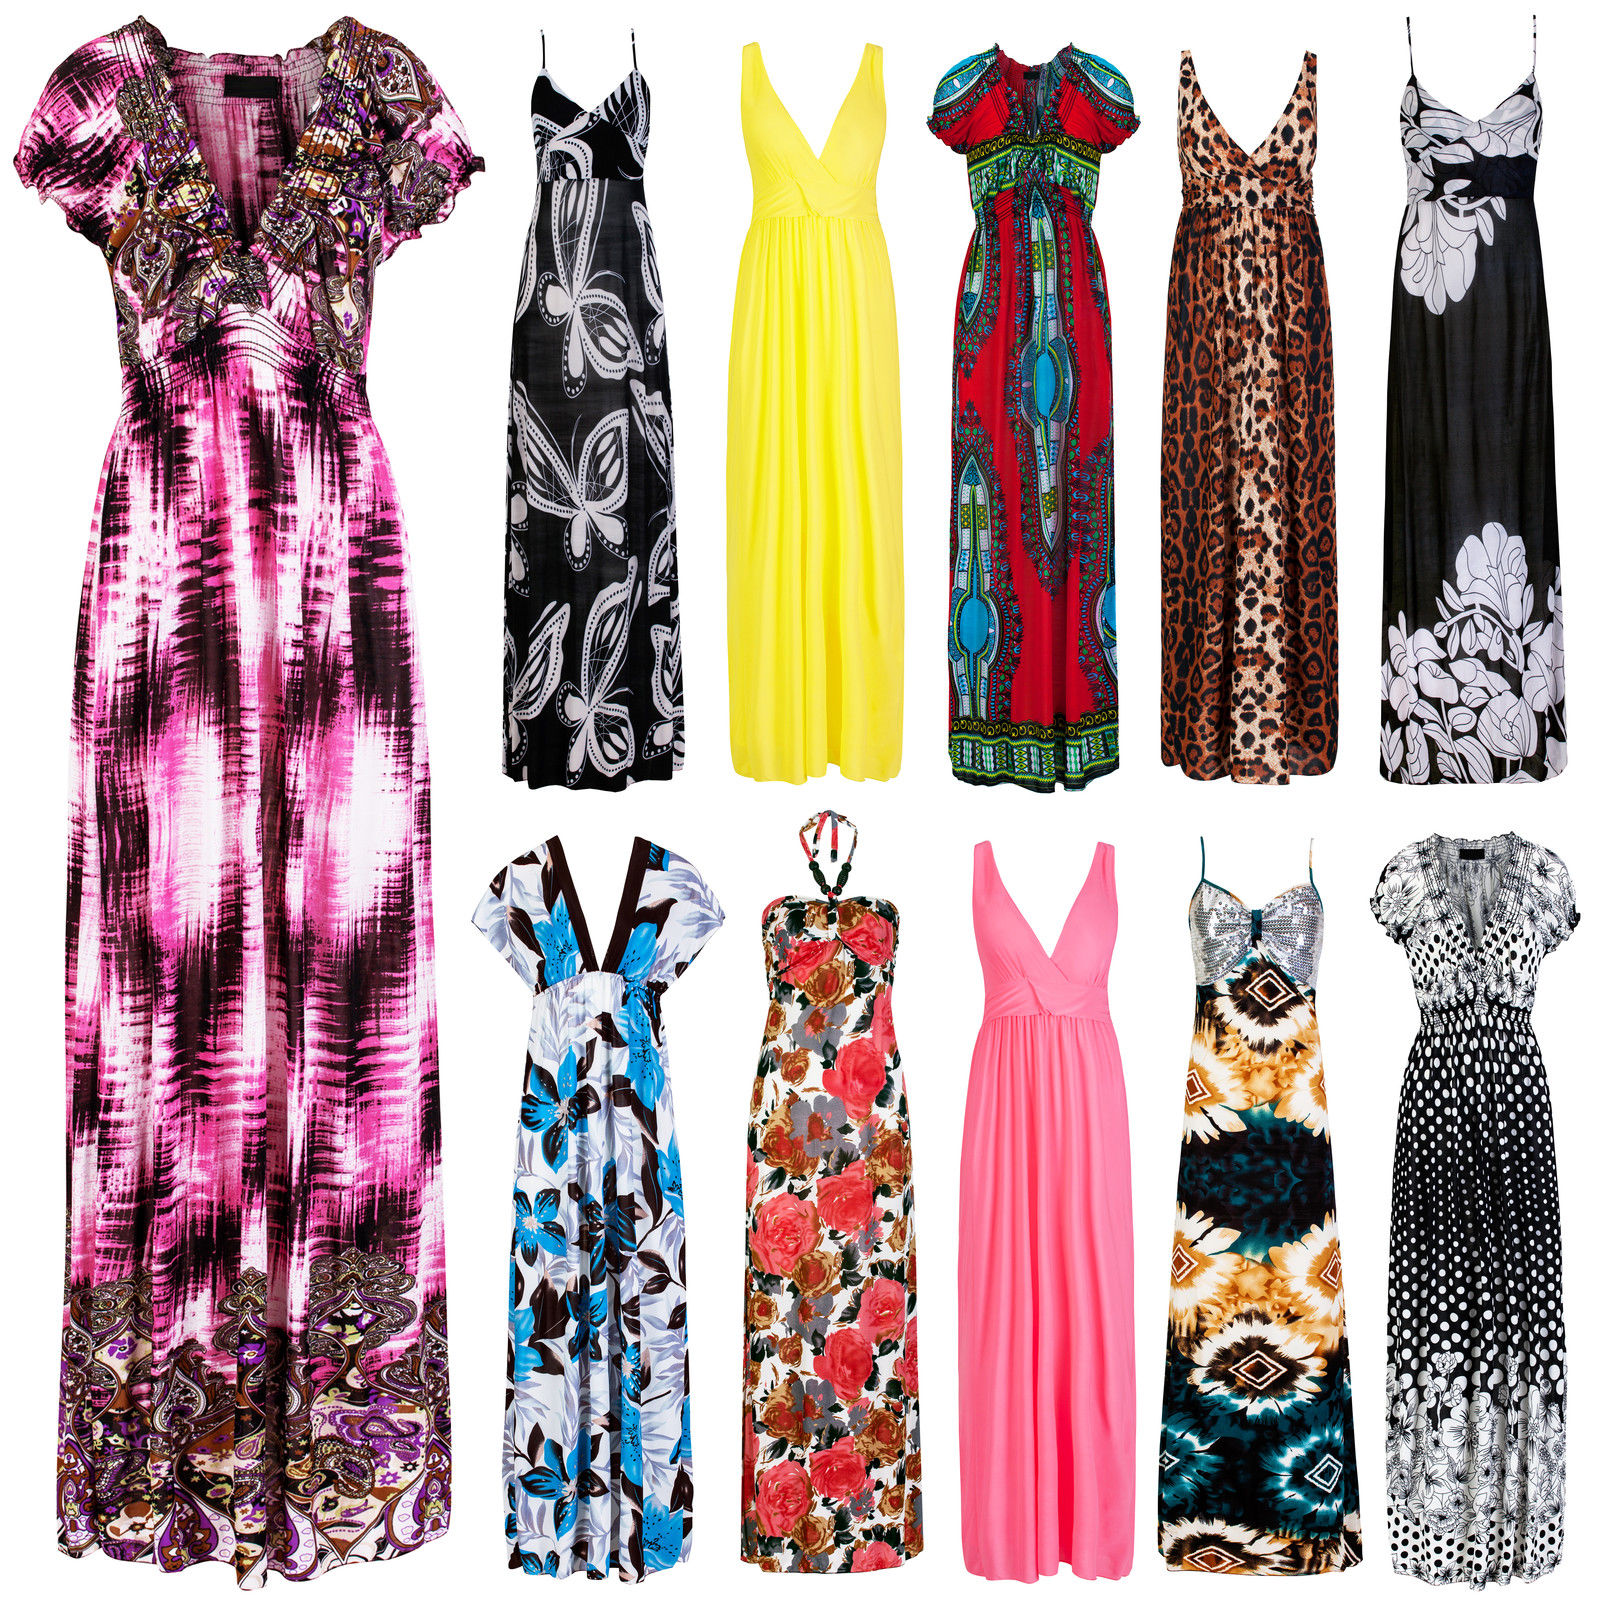 New-Womens-Long-Bright-Floral-Printed-Maxi-Dress-Ladies-Party-Summer-Size-8-20